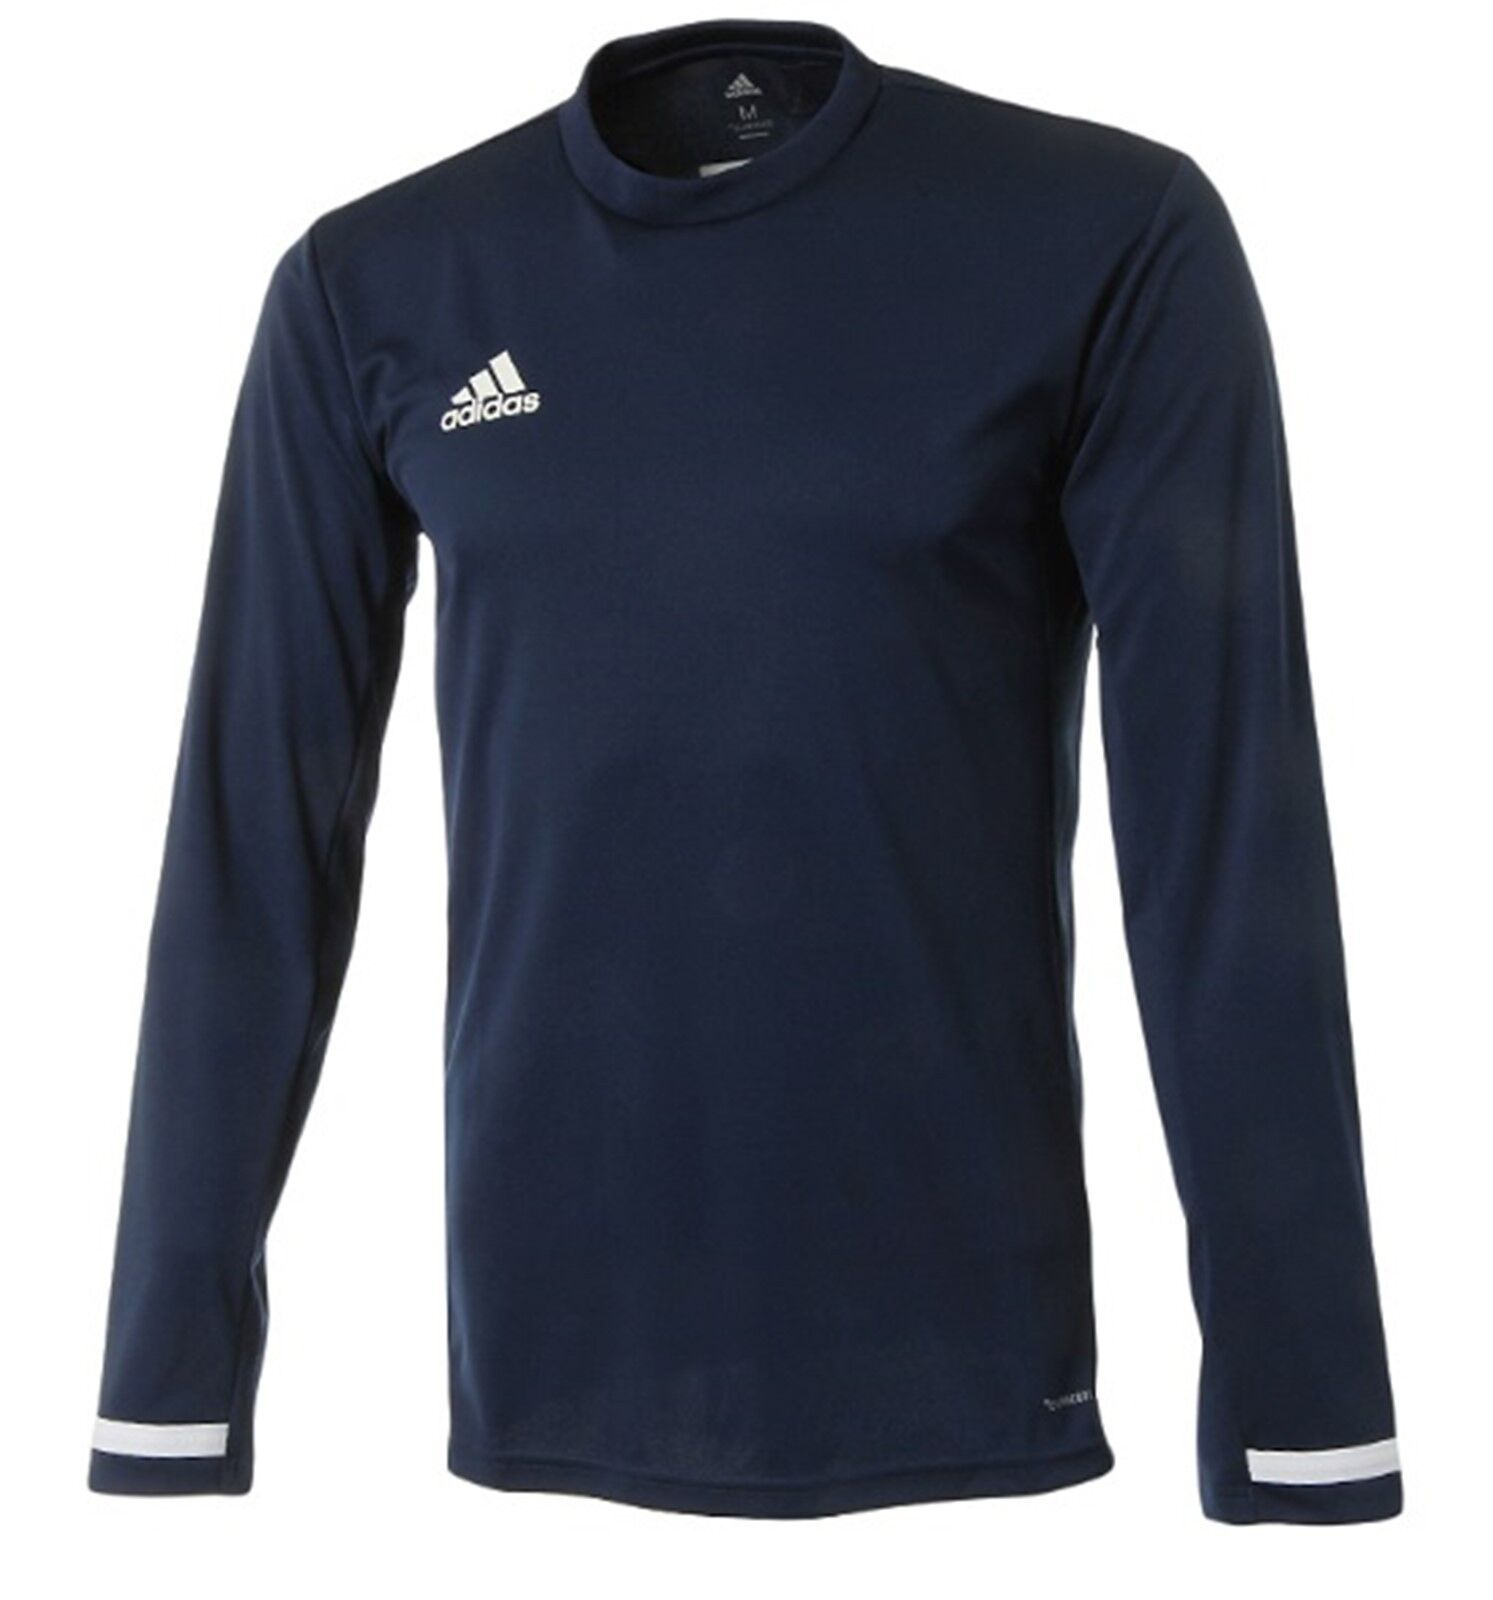 2a23be0dc Adidas Men TEAM 19 L Shirts Navy Running Soccer Top Tee Jersey DY8808  Training S nugrkv19063-Activewear Tops